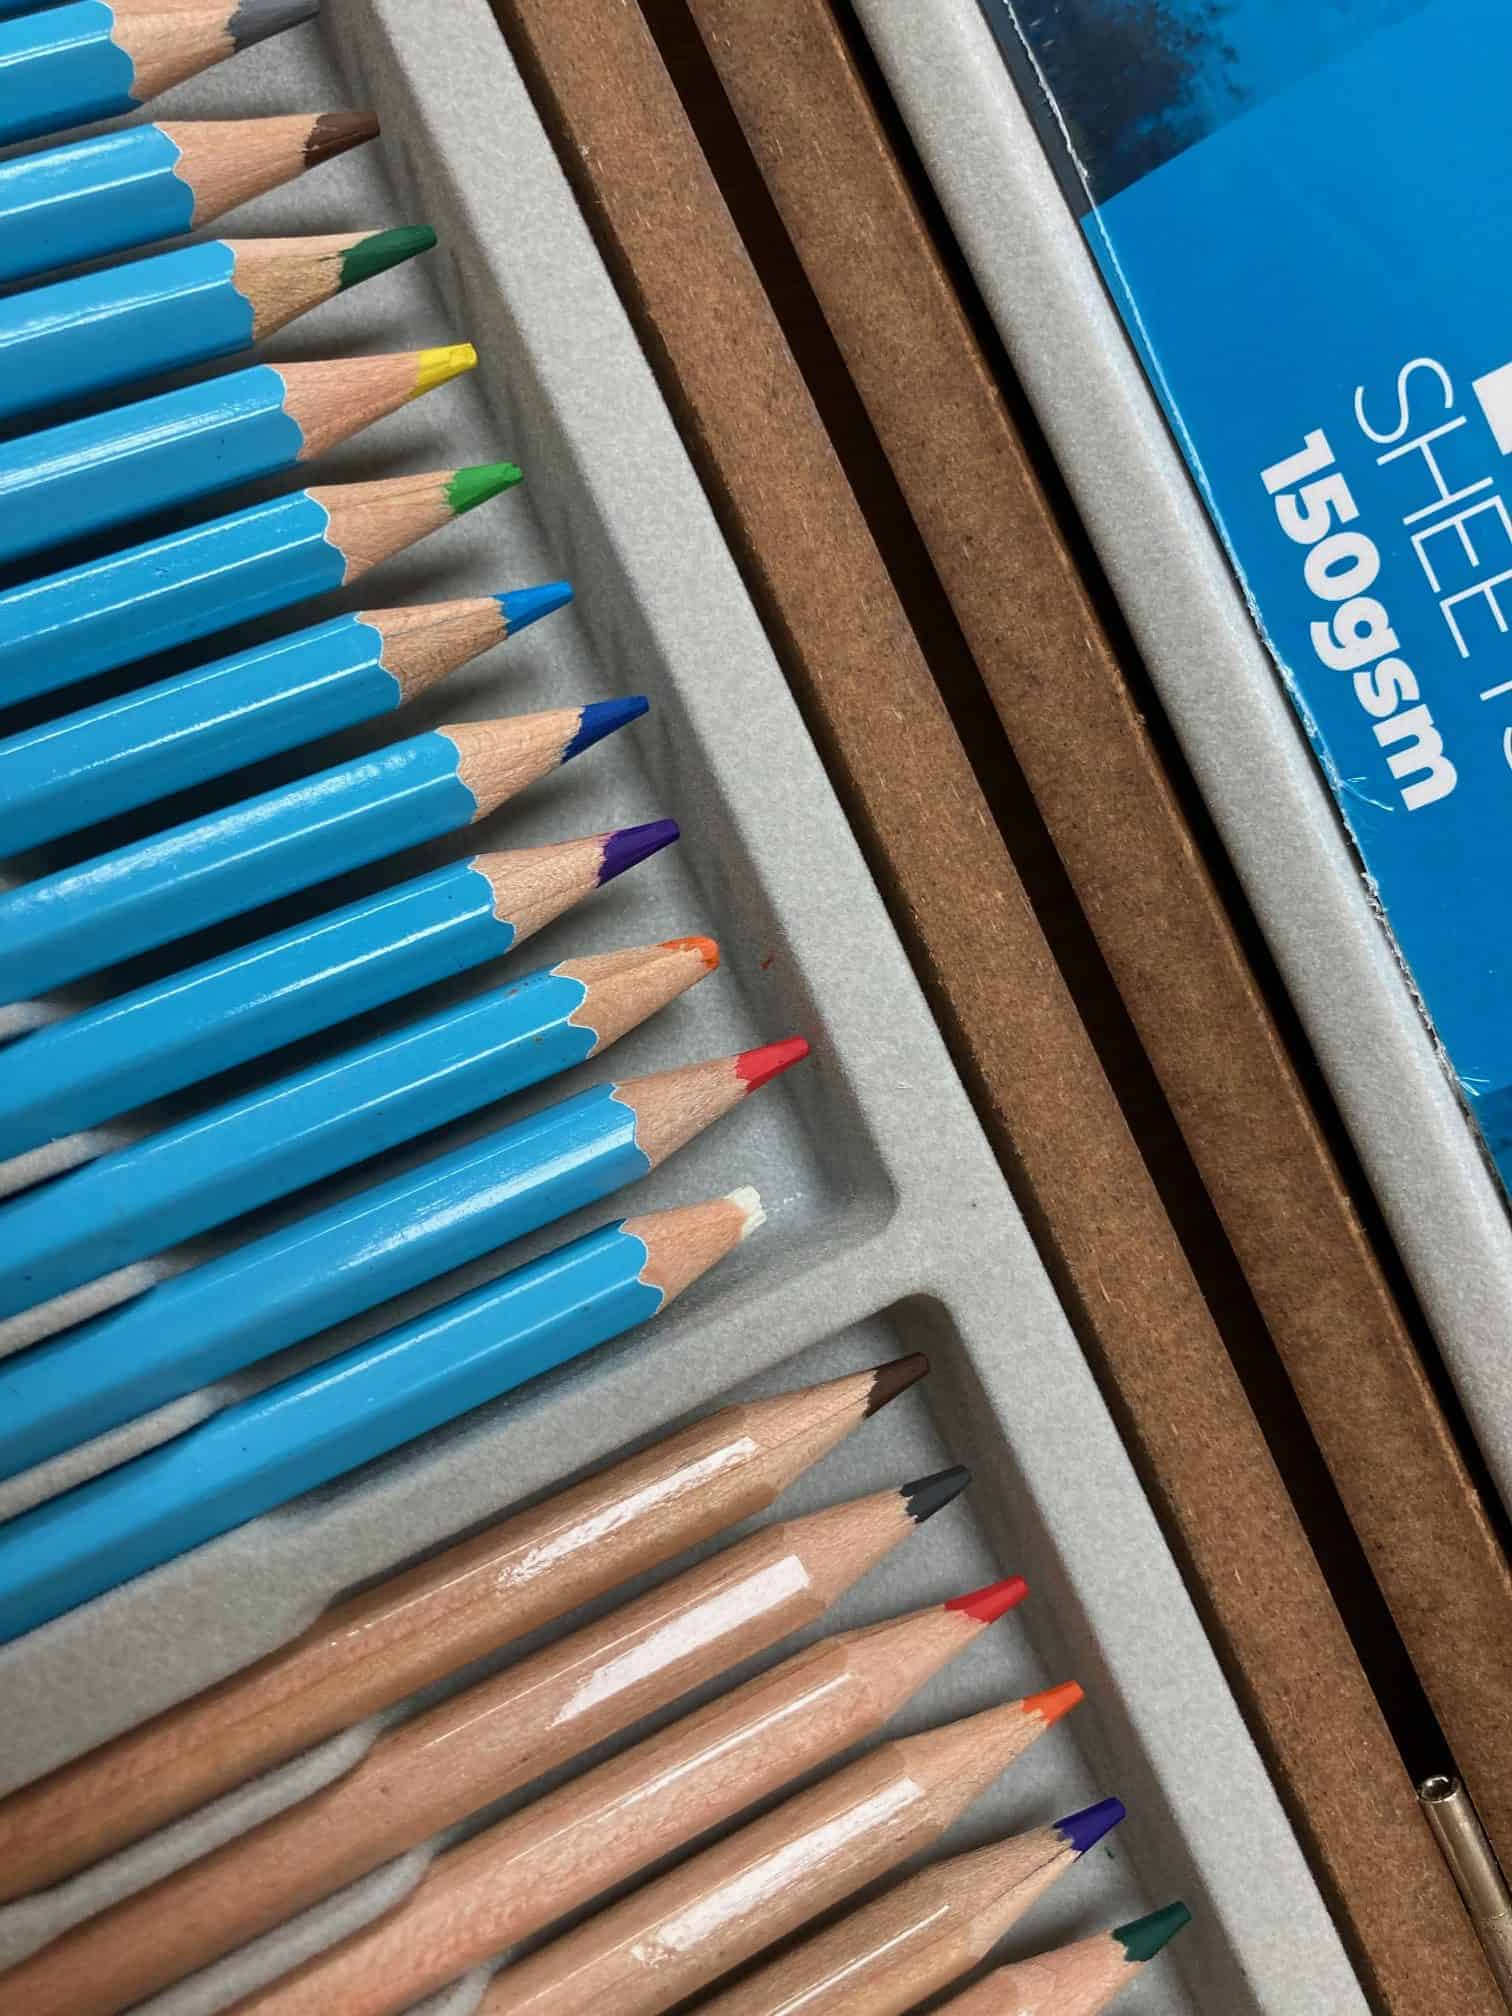 Artist Sketching & Colouring Pencil set (36 Piece) | Zieler